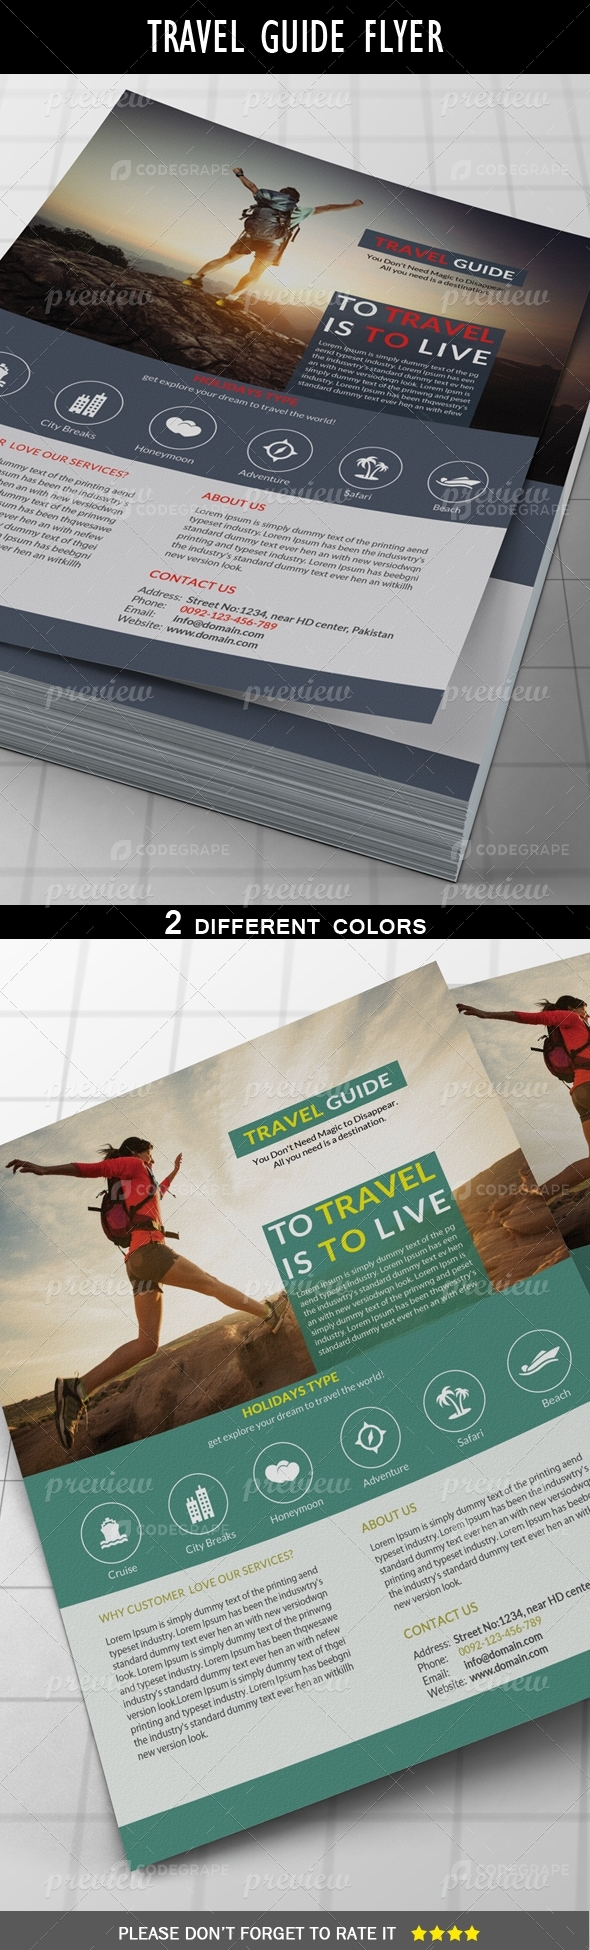 Travel Guide Flyer